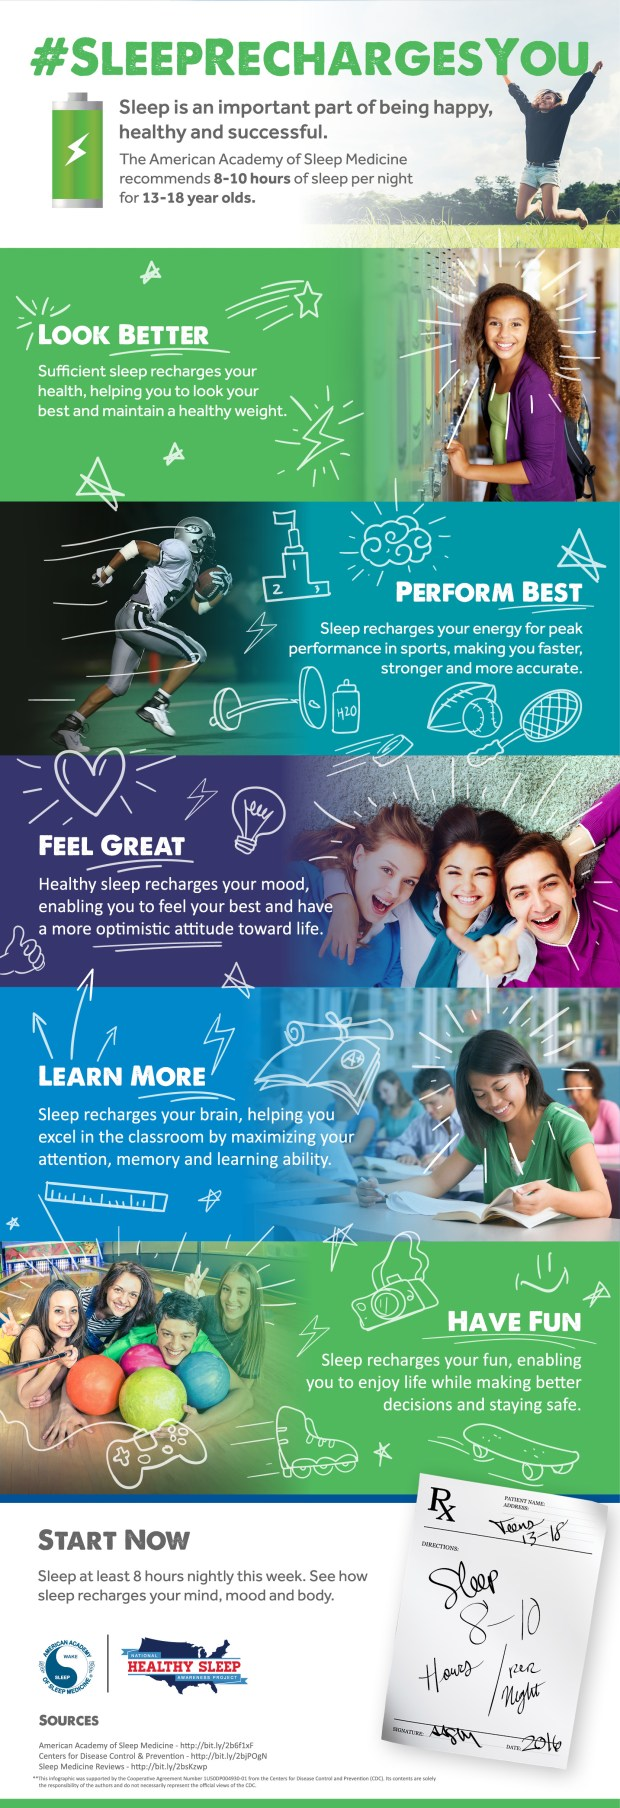 sleep-recharges-you-teen-health infoG.jpg